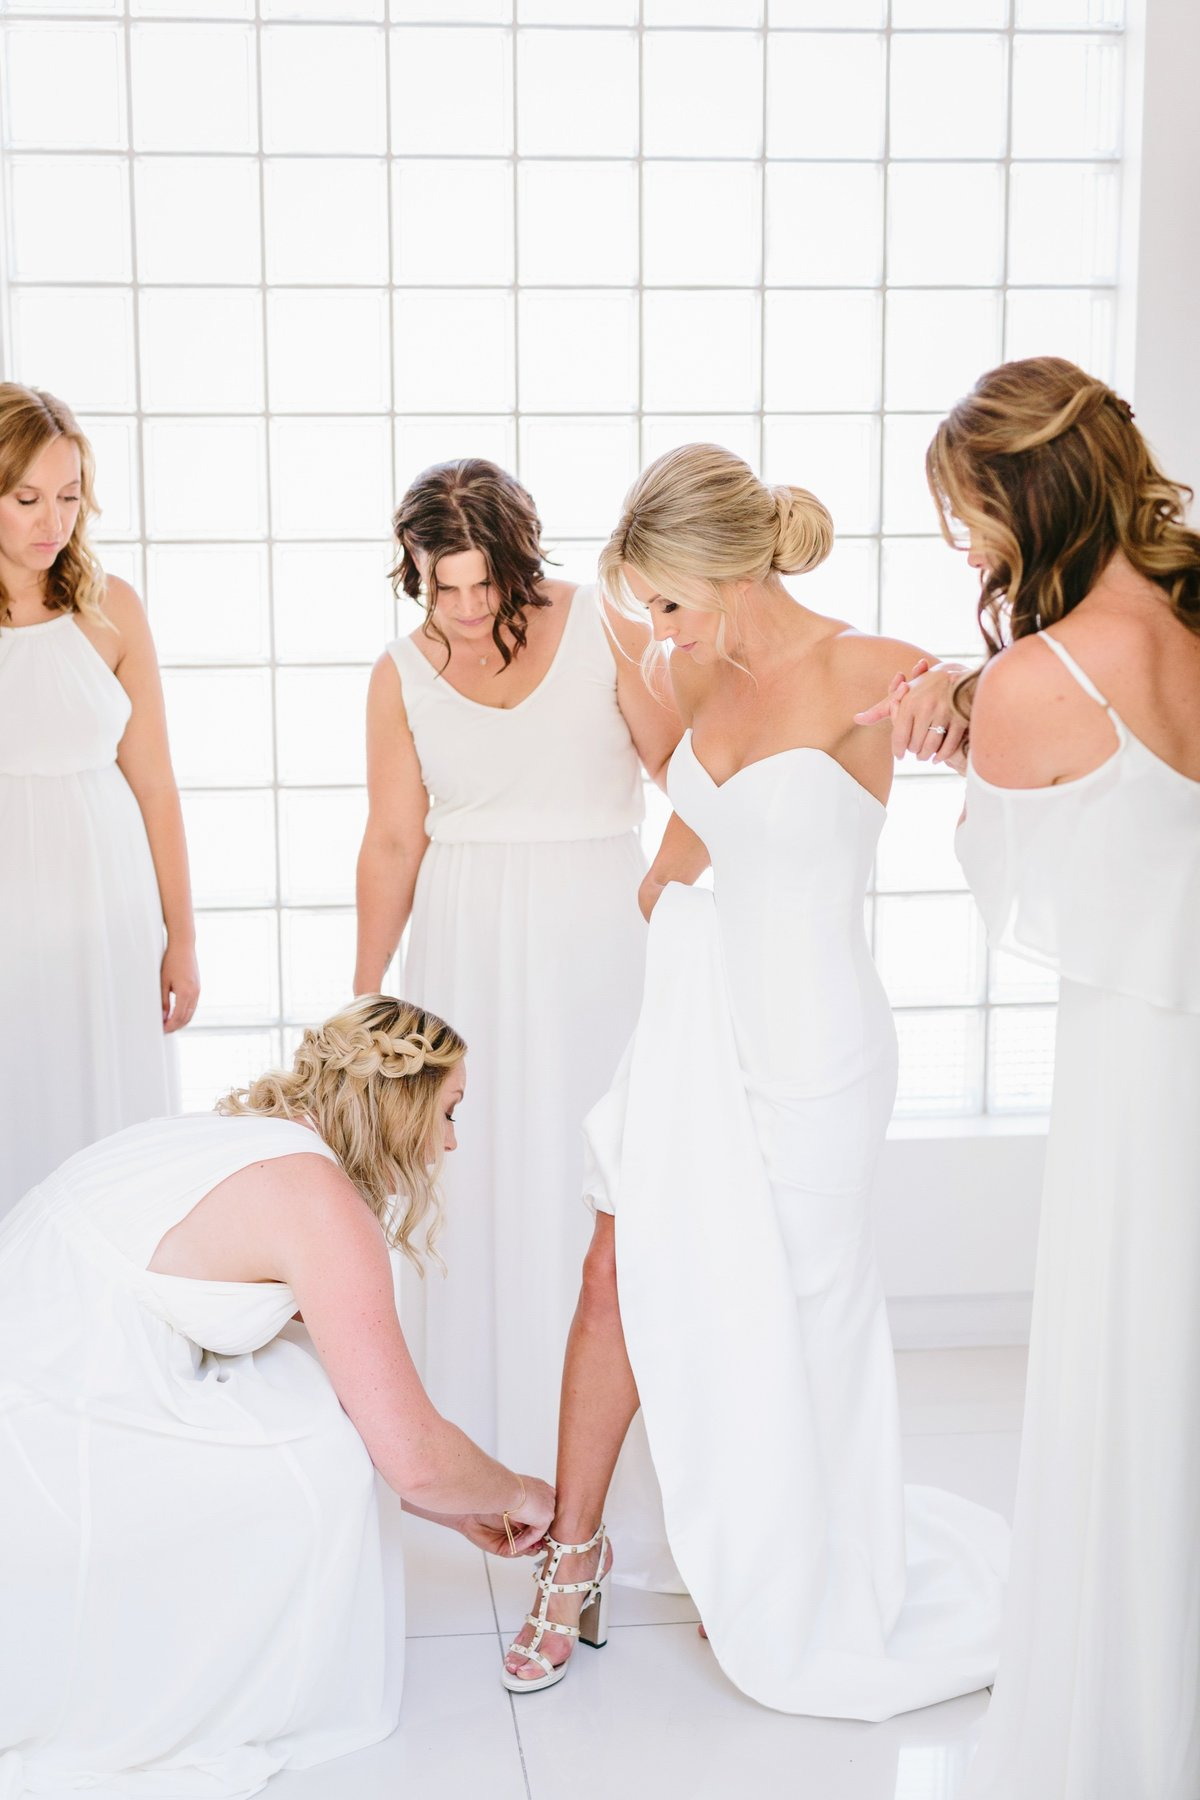 Best California Wedding Photographer-Jodee Debes Photography-344